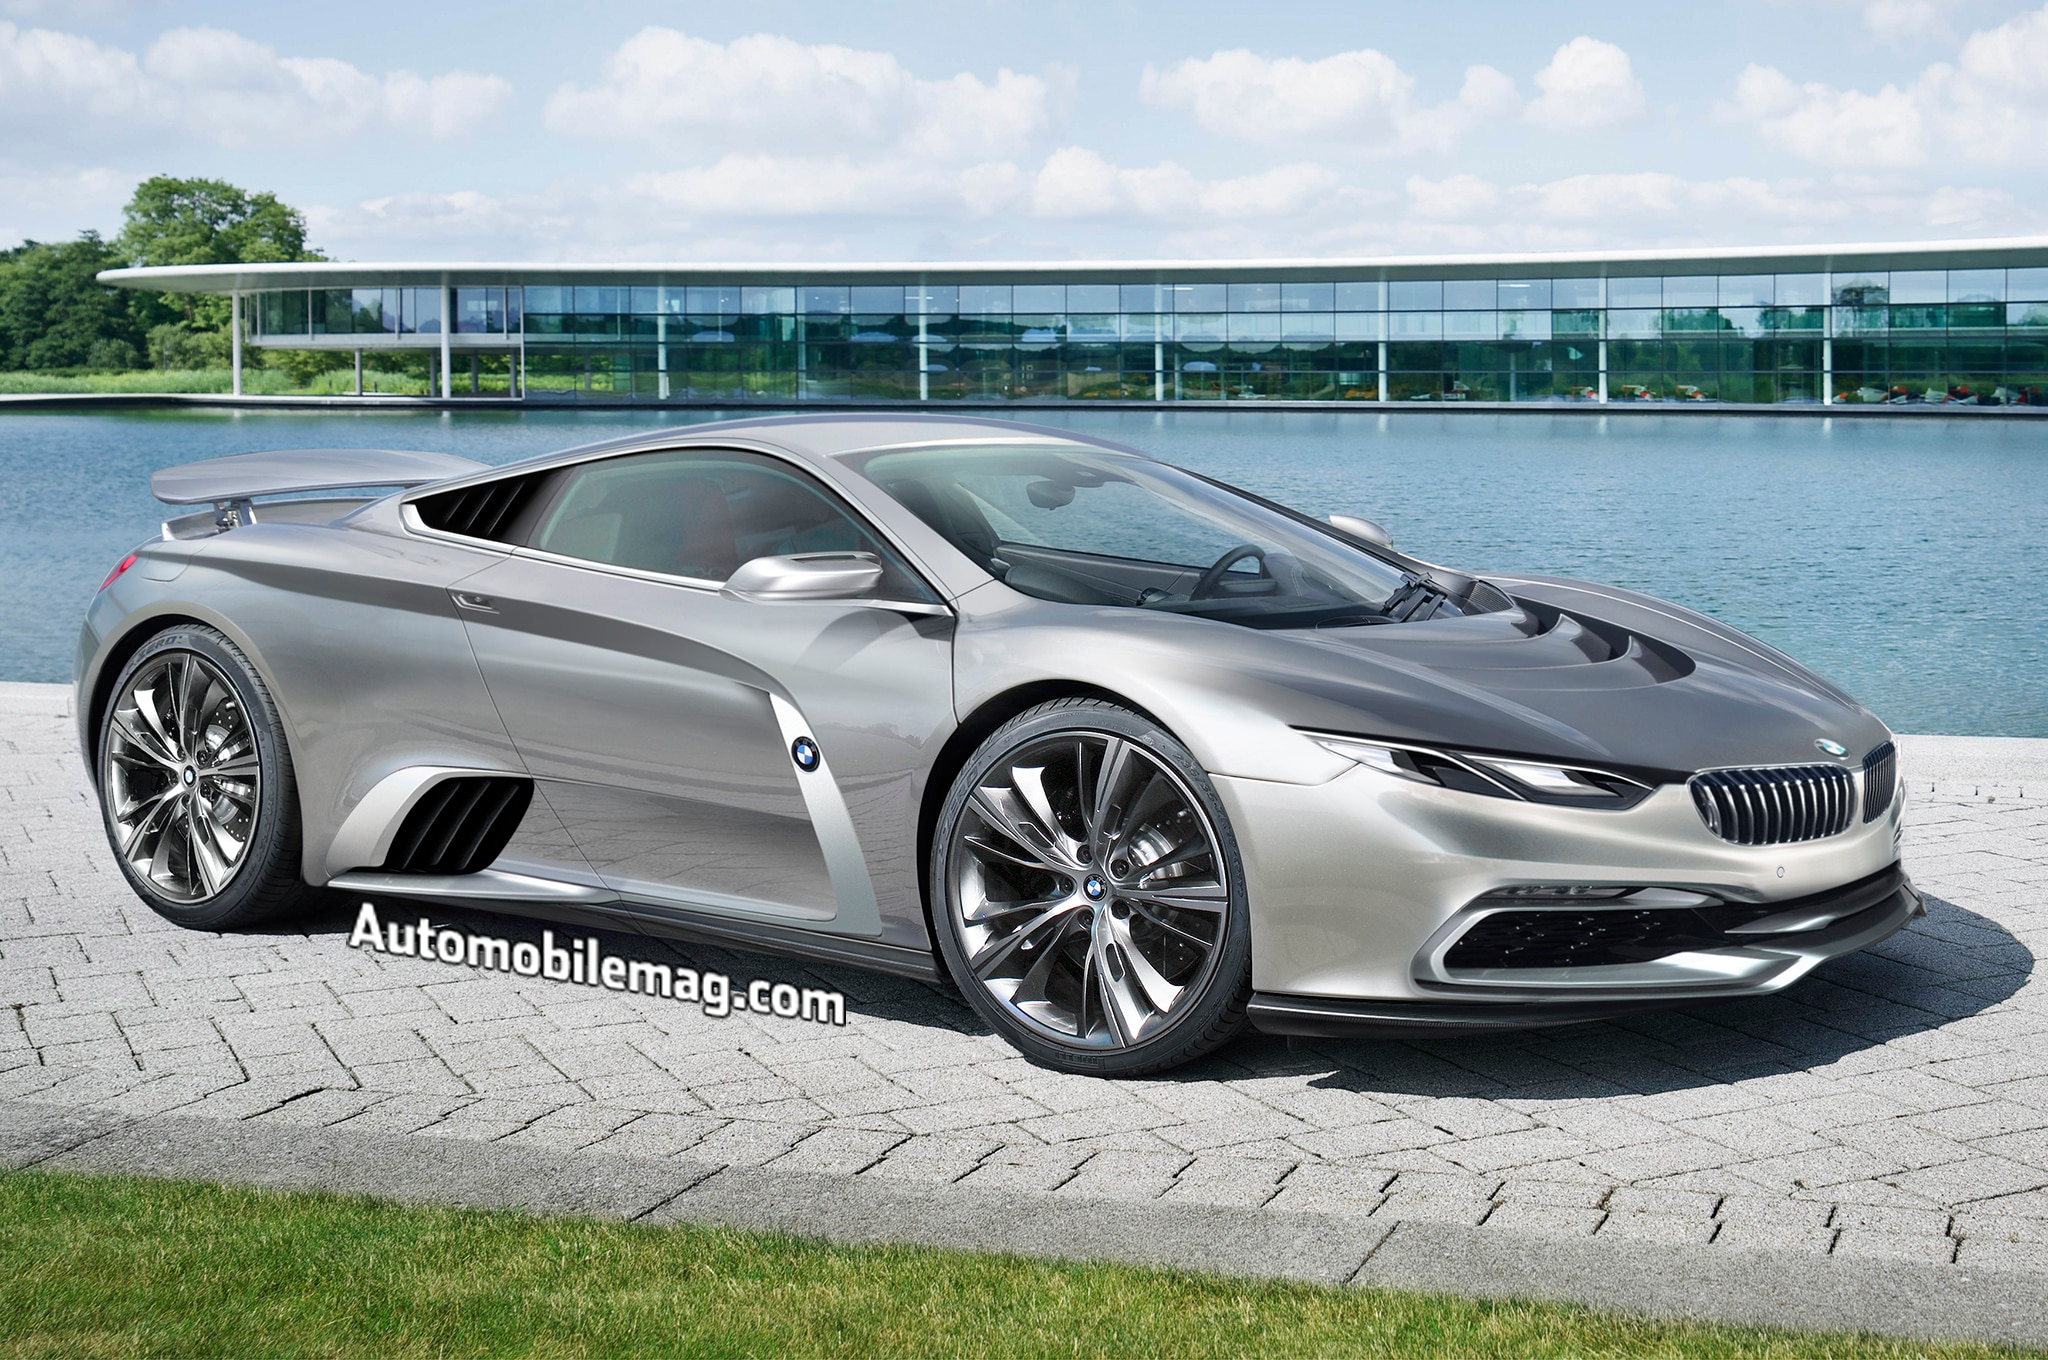 A BMW And McLaren Supercar? Maybe. BMW And Lexus? Humbug